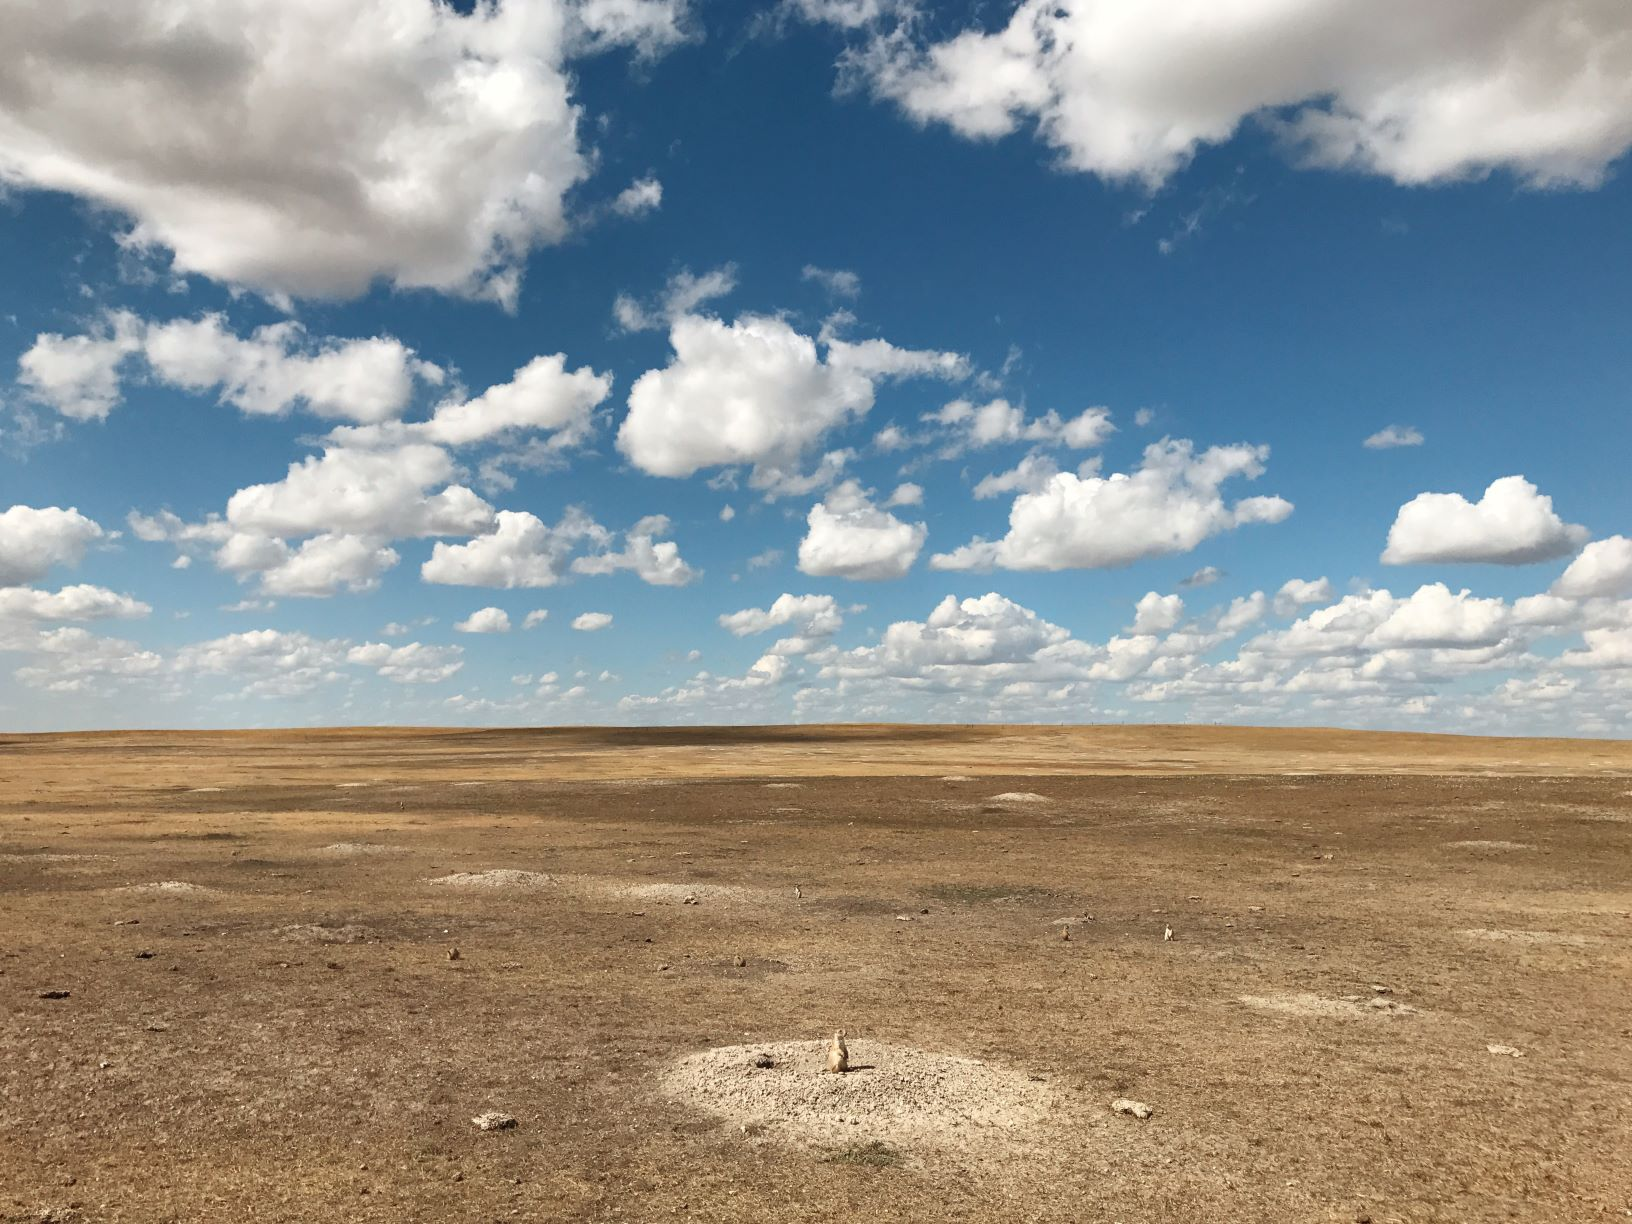 a large and flat dirt landscape showing a prairie dog habitat, with one dog standing out of their hole